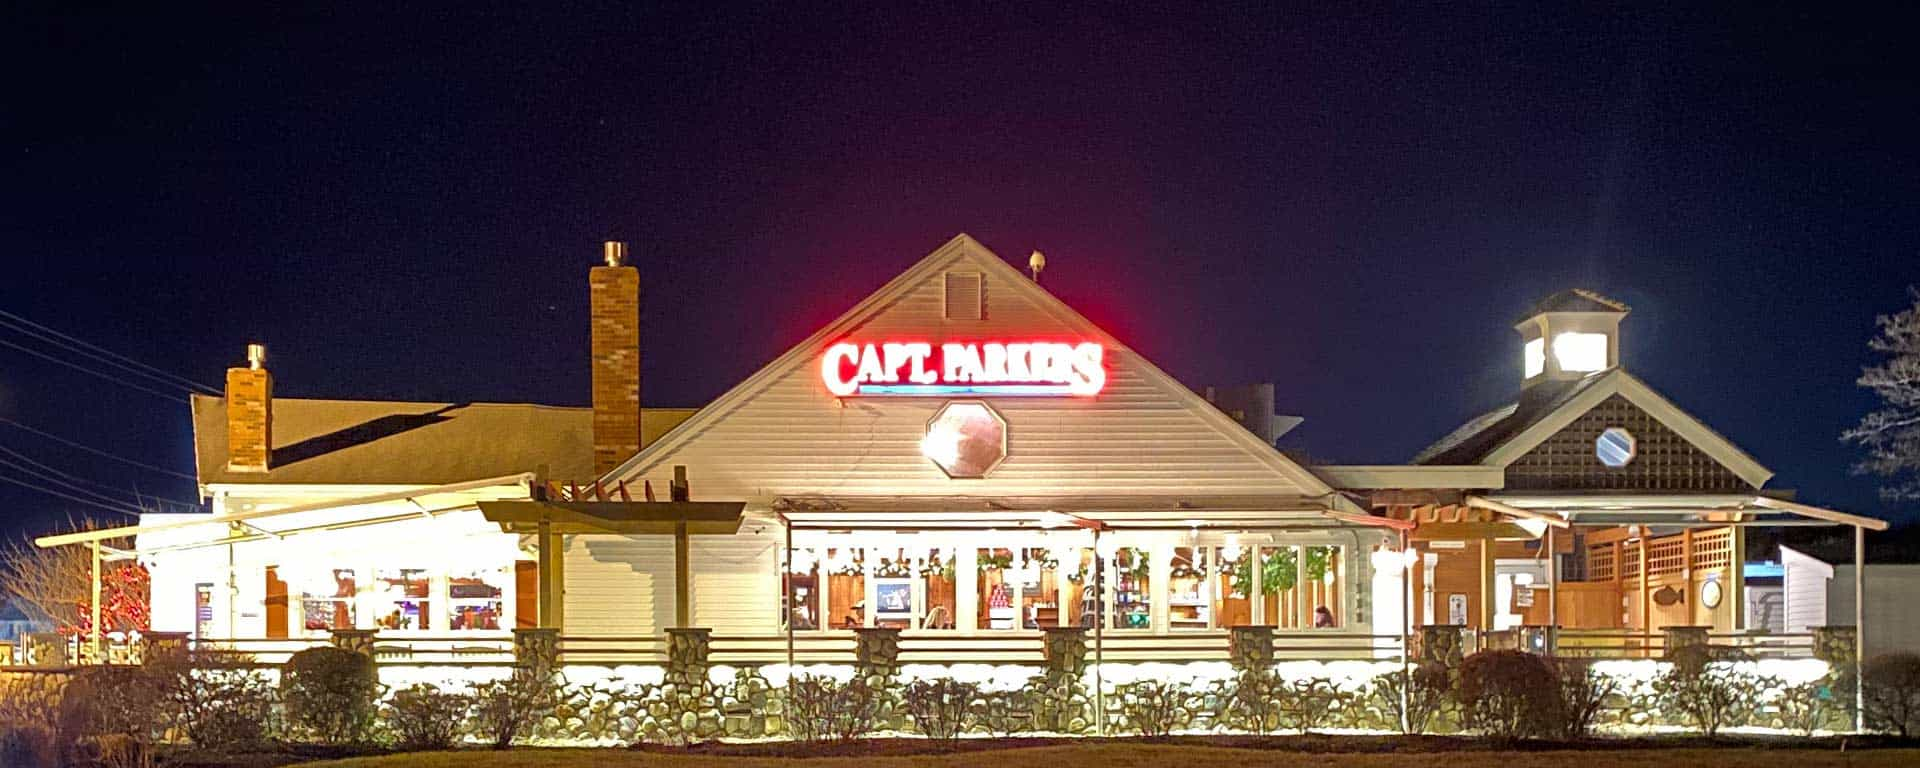 Captain Parkers at night with red sign